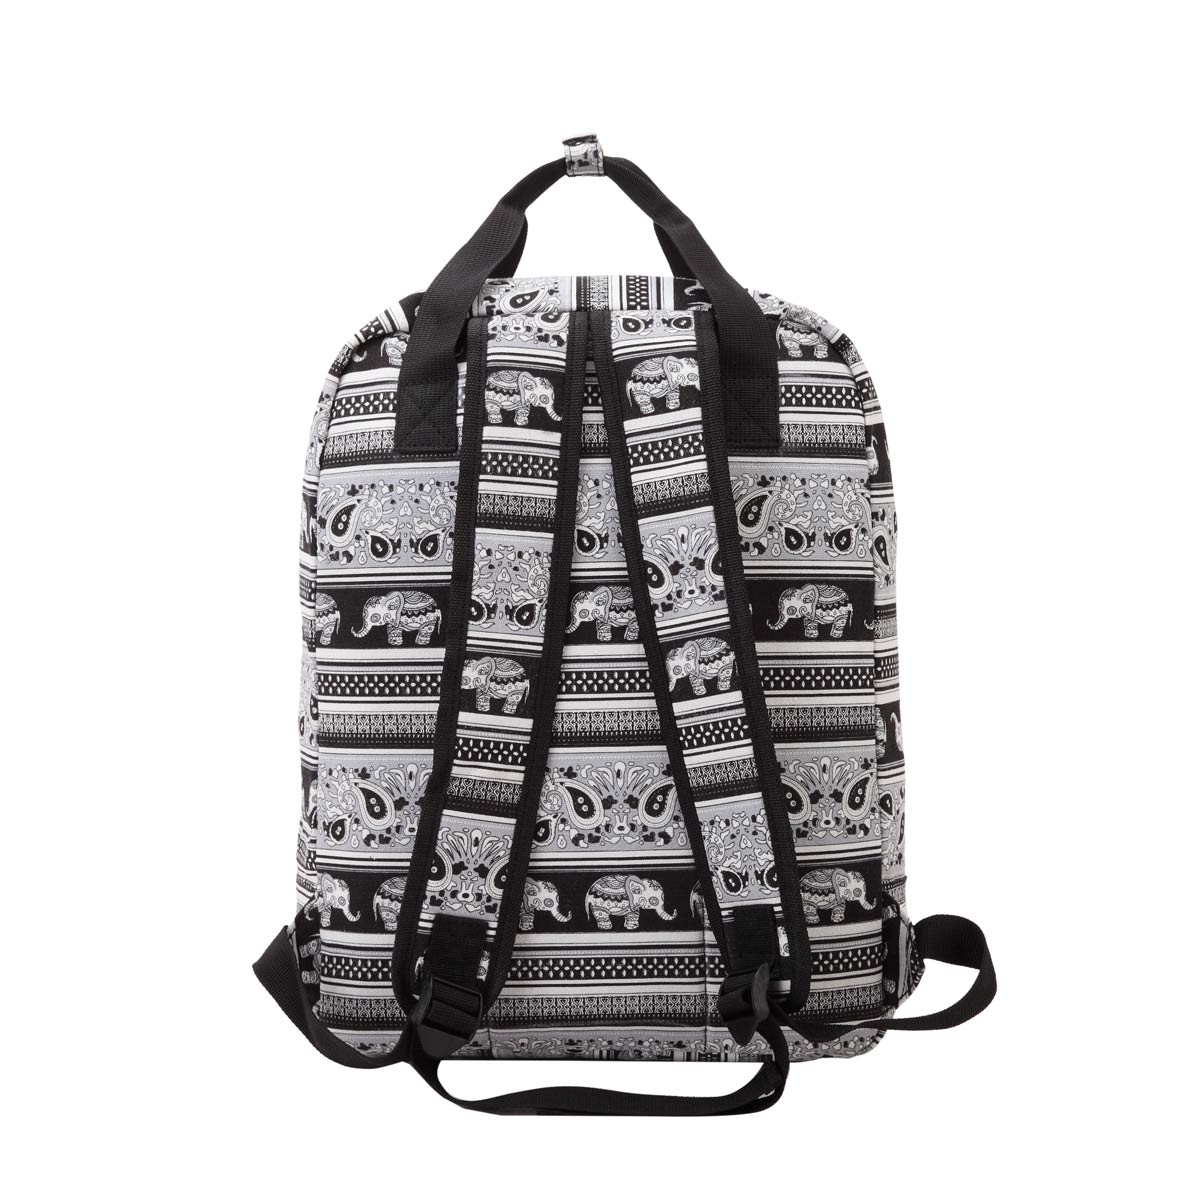 Ladies Laptop Backpack Bag QL5171Kr